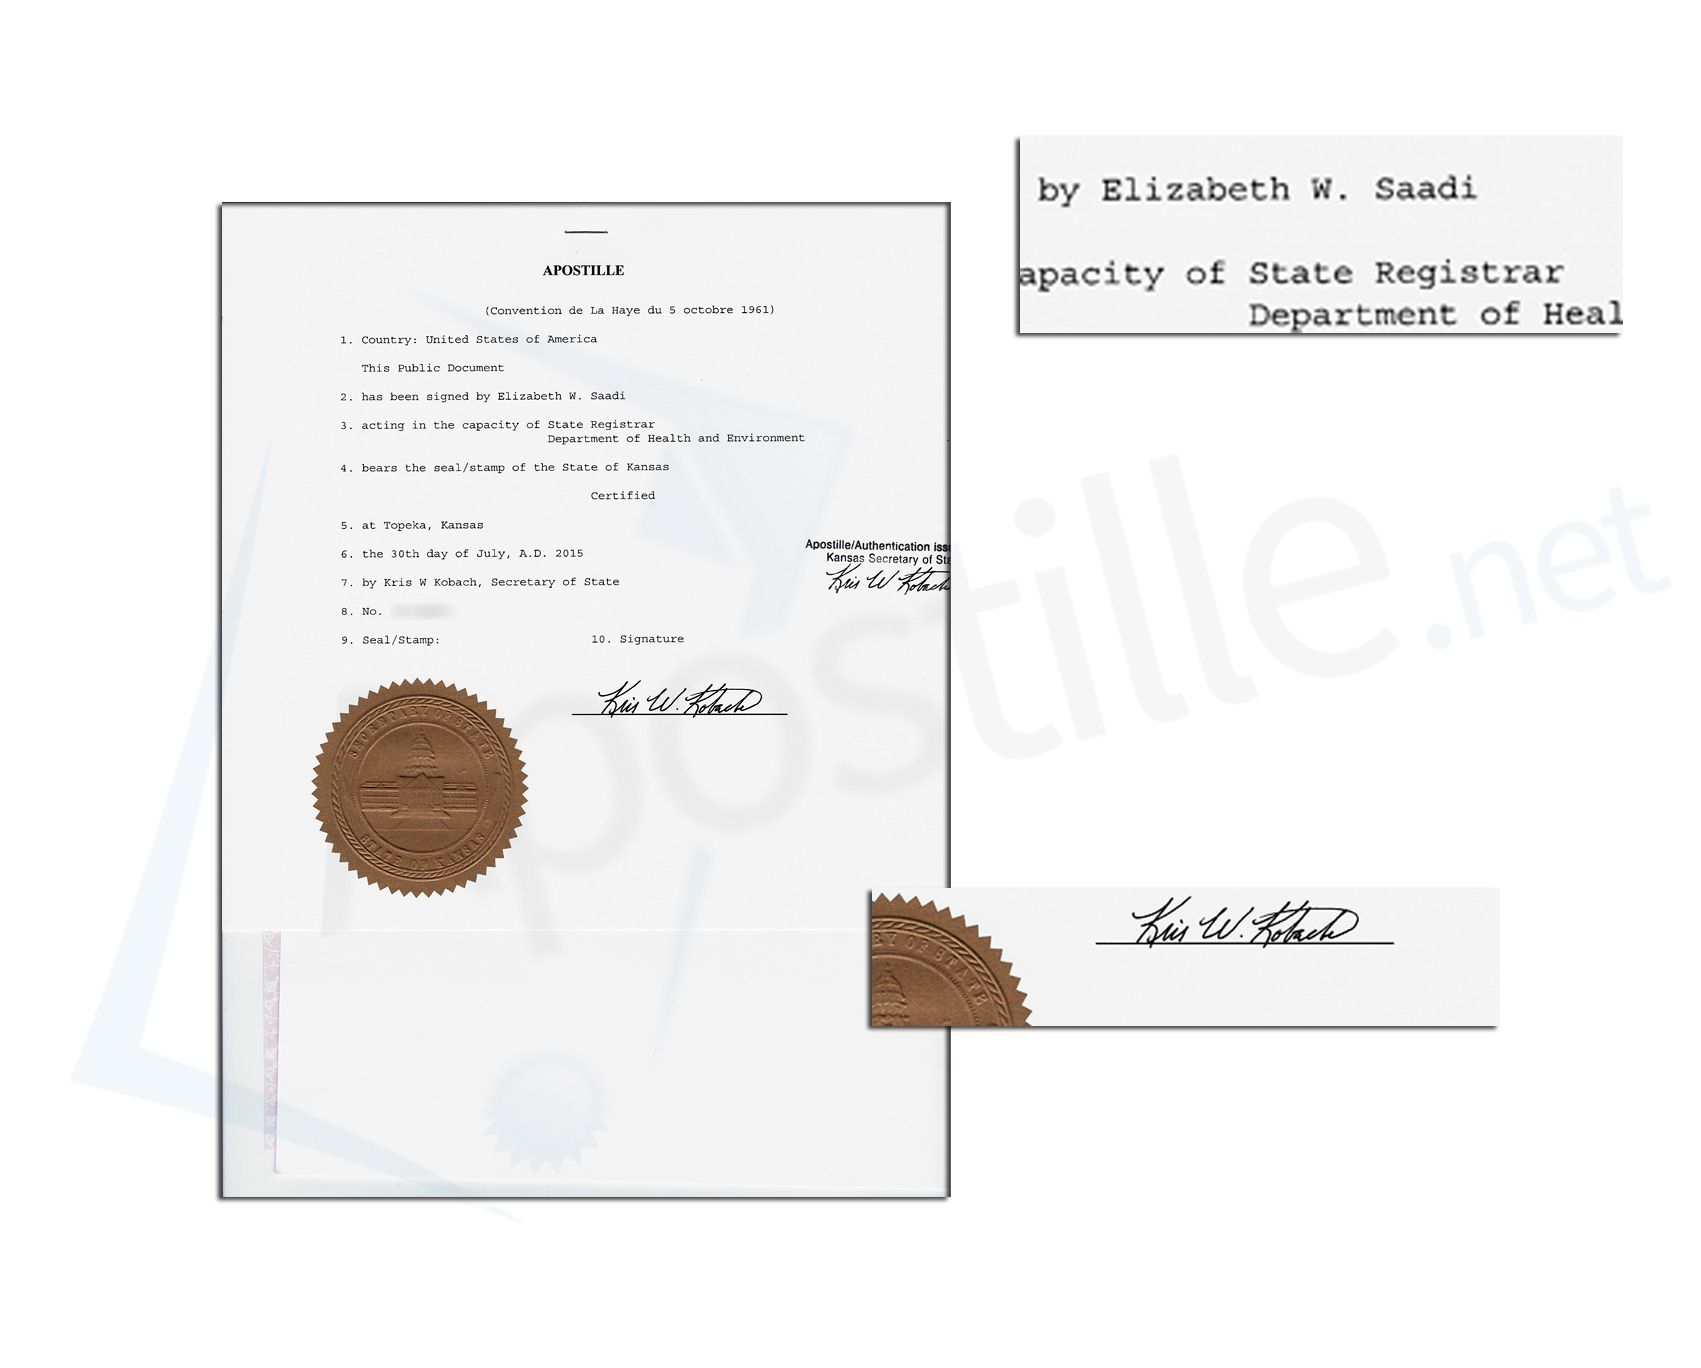 State Of Kansas Apostille Issued By Kris W Kobach Secretary Of State